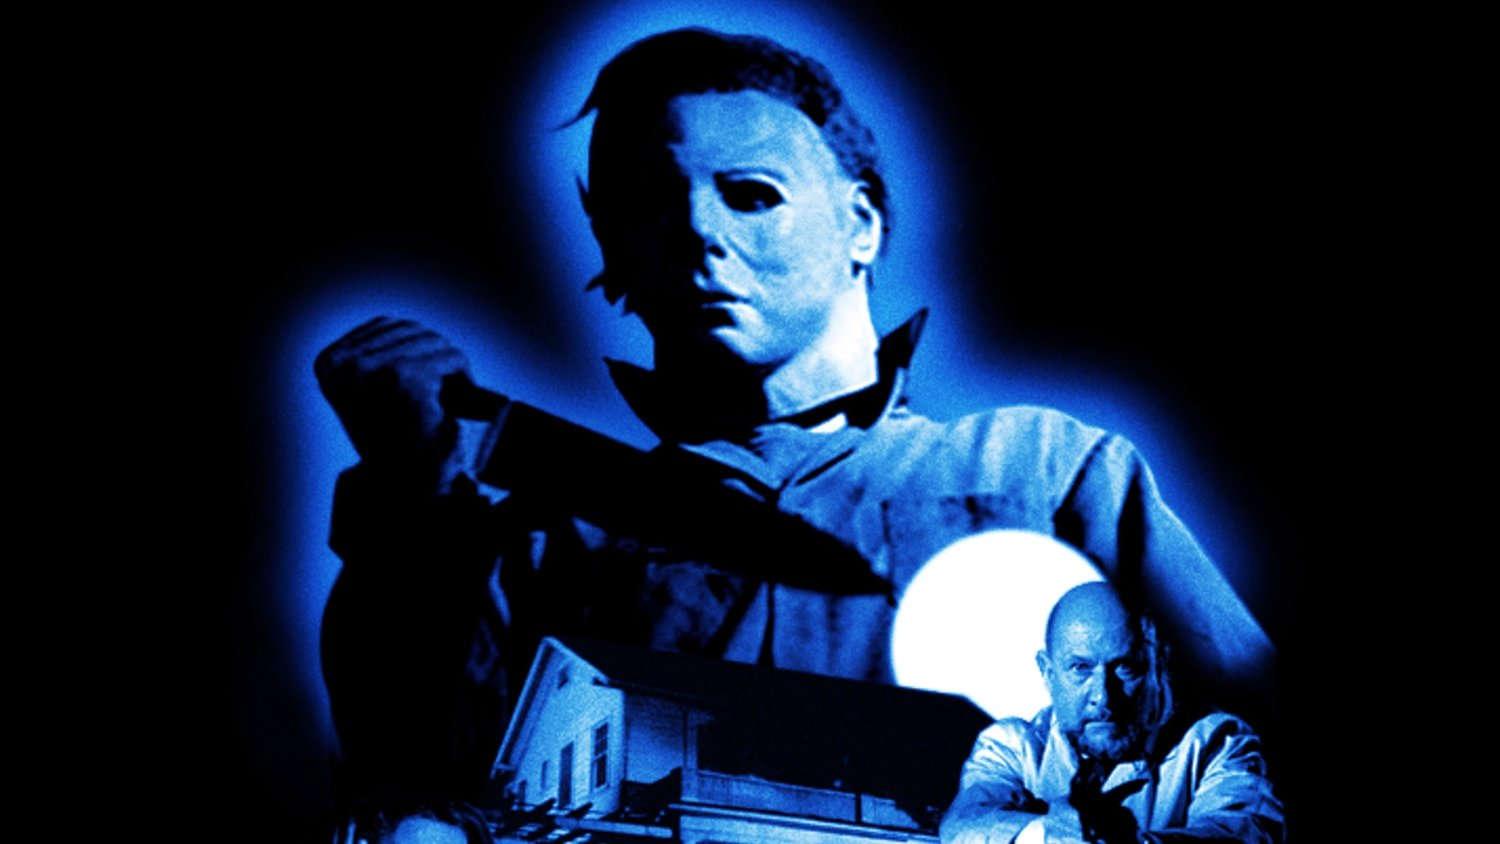 The Next HALLOWEEN Movie Will Be Developed by David Gordon Green and Danny McBride